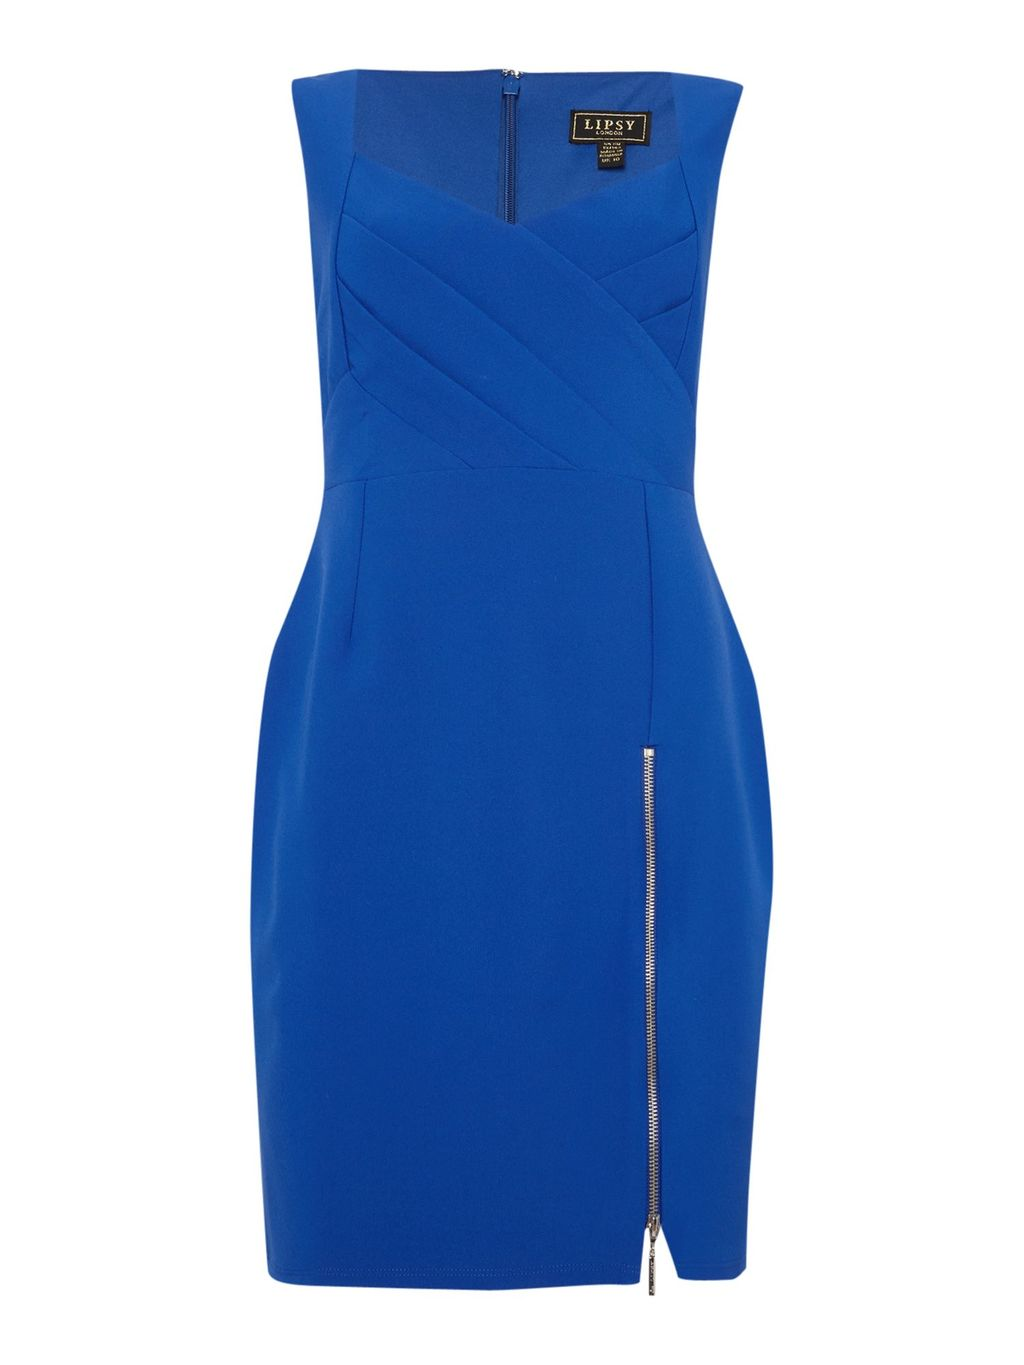 Cross Front Bodycon Zip Detail Dress, Cobalt - style: shift; neckline: v-neck; sleeve style: spaghetti straps; pattern: plain; predominant colour: royal blue; secondary colour: royal blue; occasions: evening, occasion; length: just above the knee; fit: body skimming; fibres: polyester/polyamide - 100%; sleeve length: sleeveless; pattern type: fabric; texture group: jersey - stretchy/drapey; embellishment: zips; season: a/w 2015; wardrobe: event